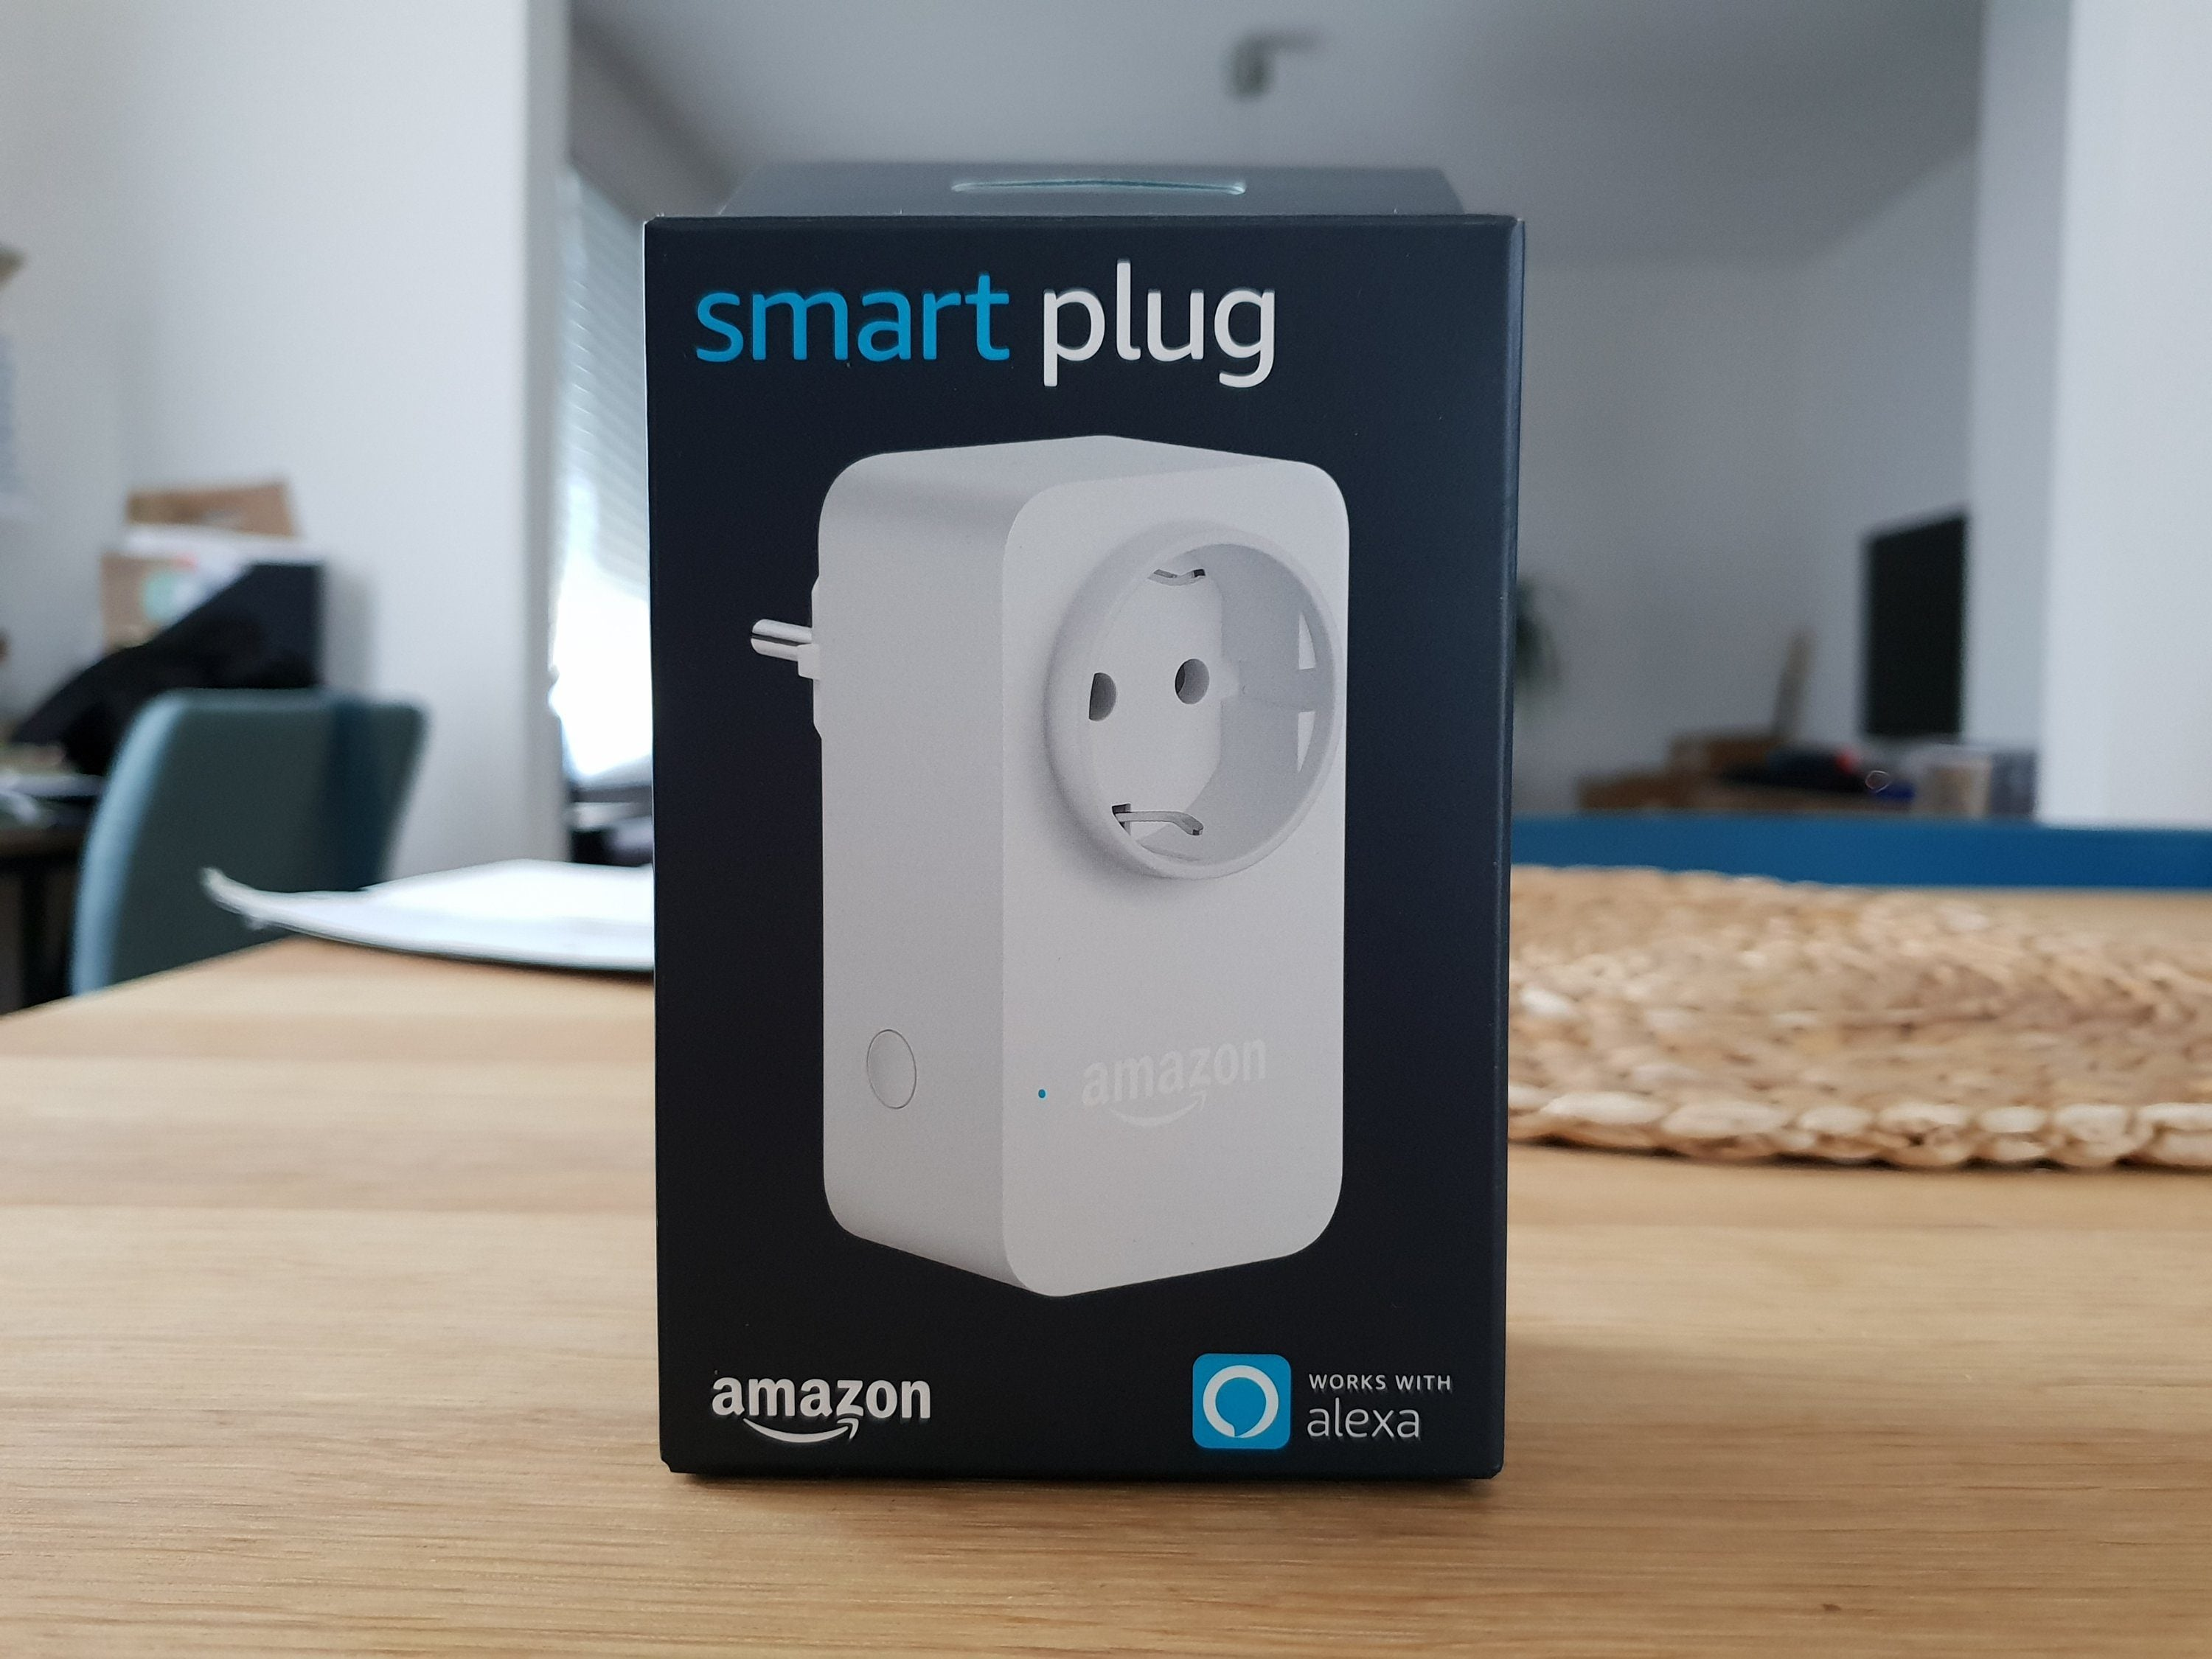 Amazon Smart Plug WLAN-Steckdose im Test 17